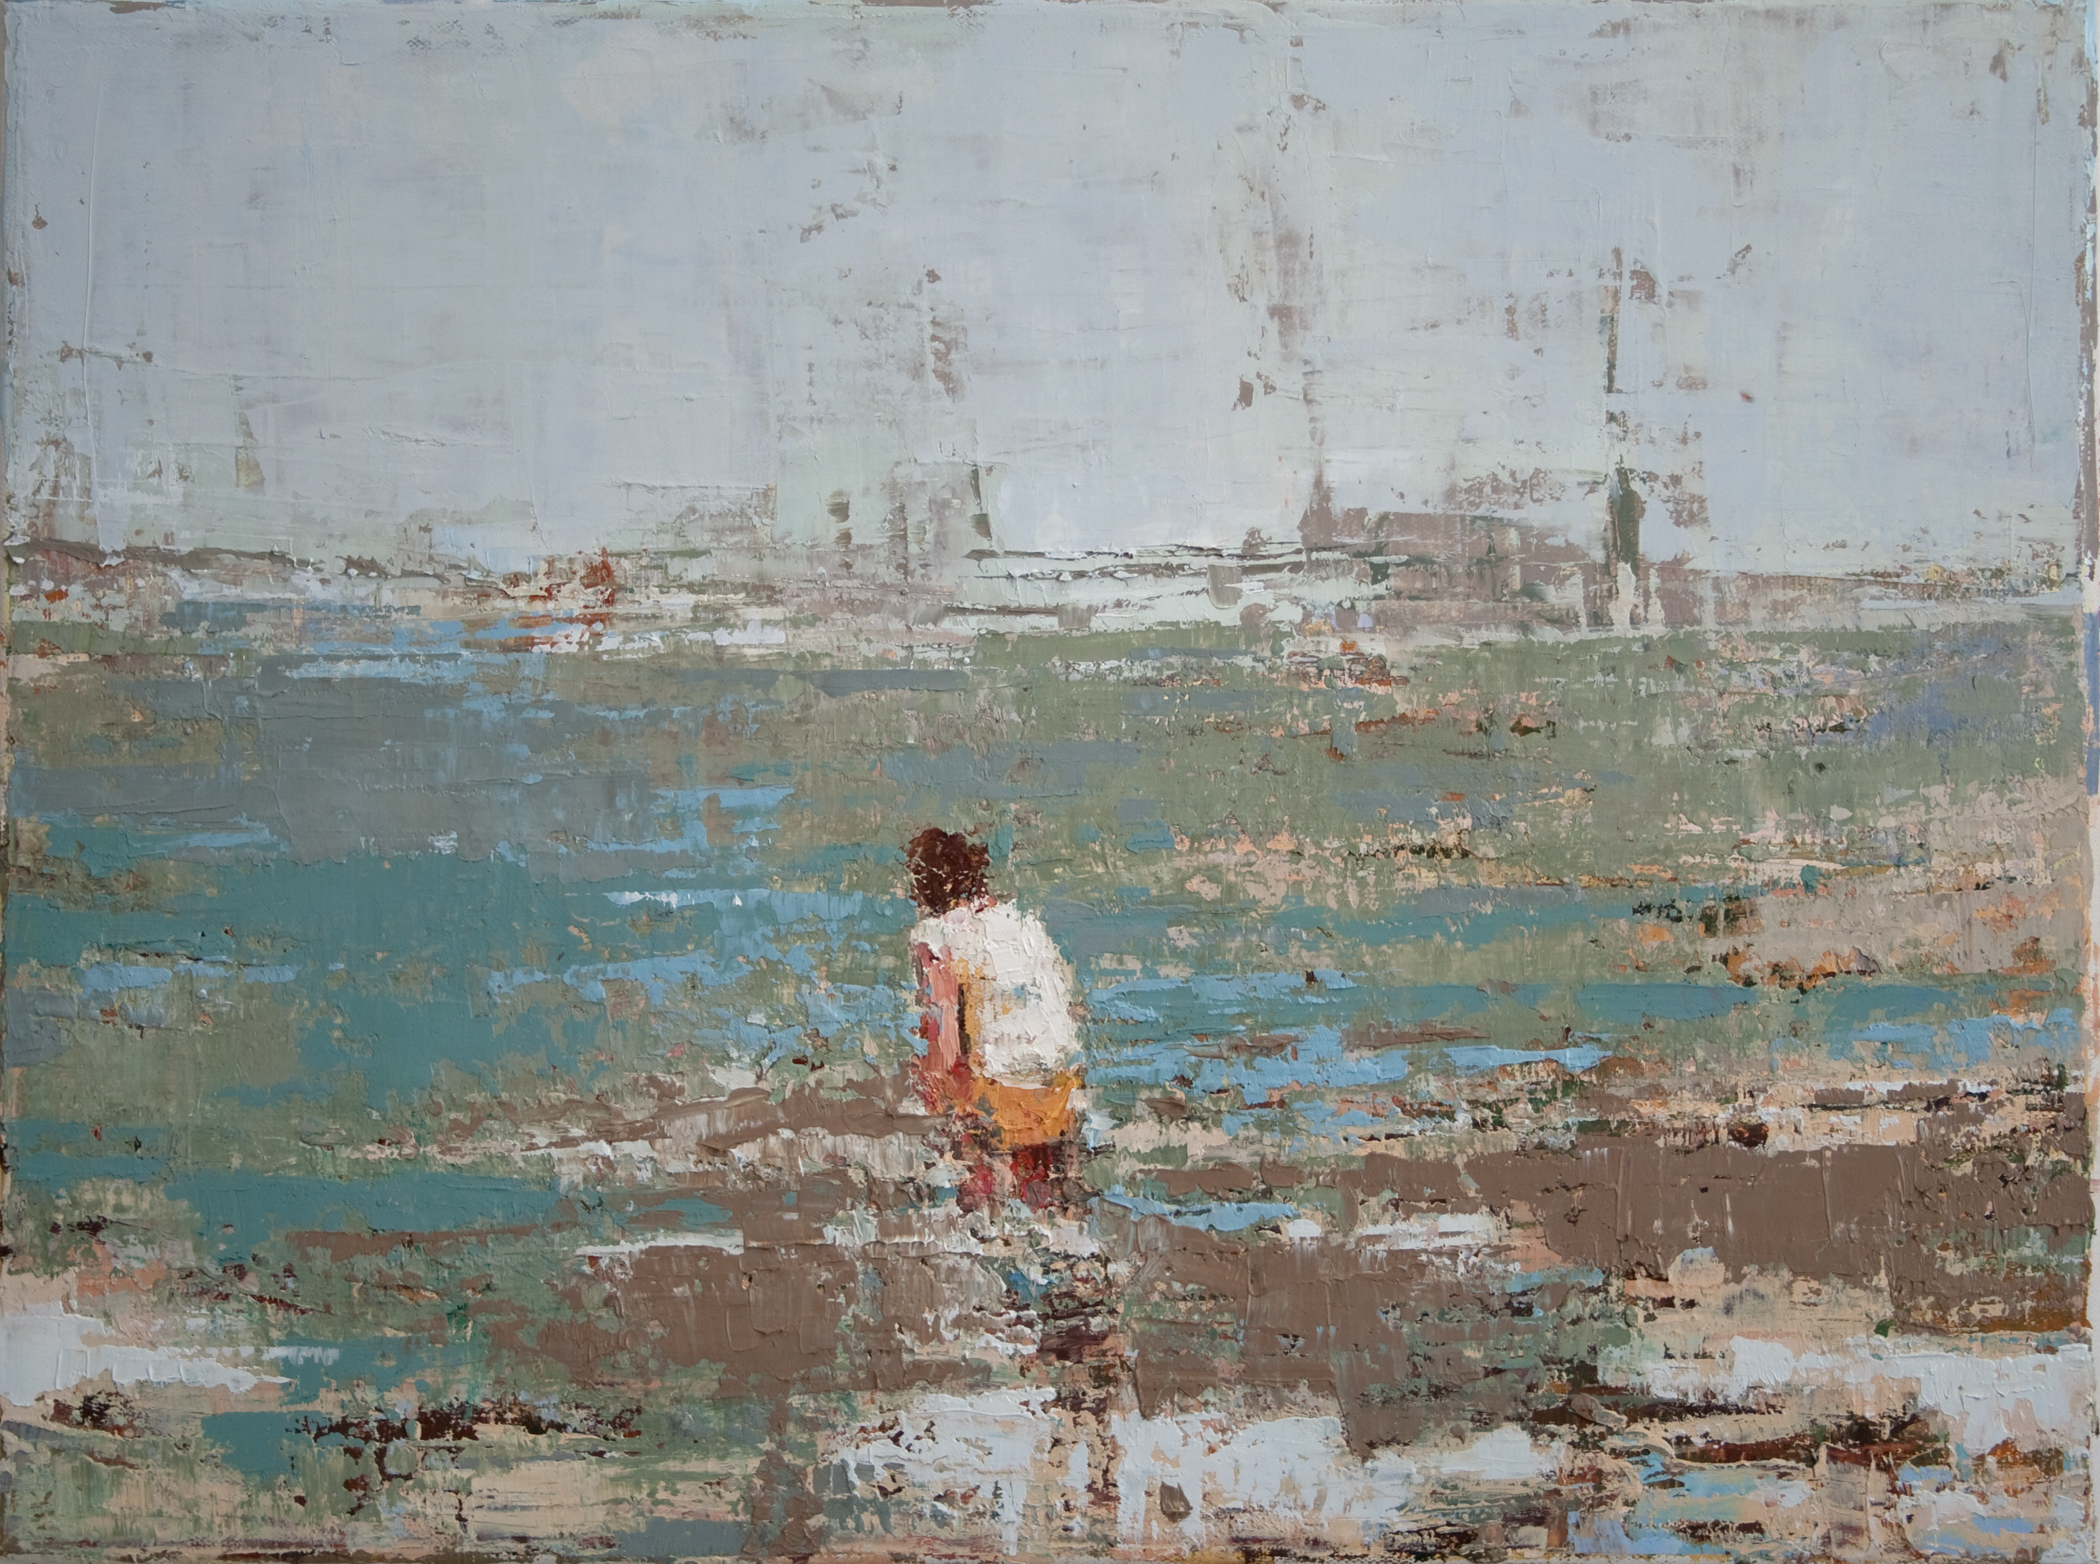 """Lonely Beach, oil on linen, 12"""" x 16"""", 2010, Private Collection"""